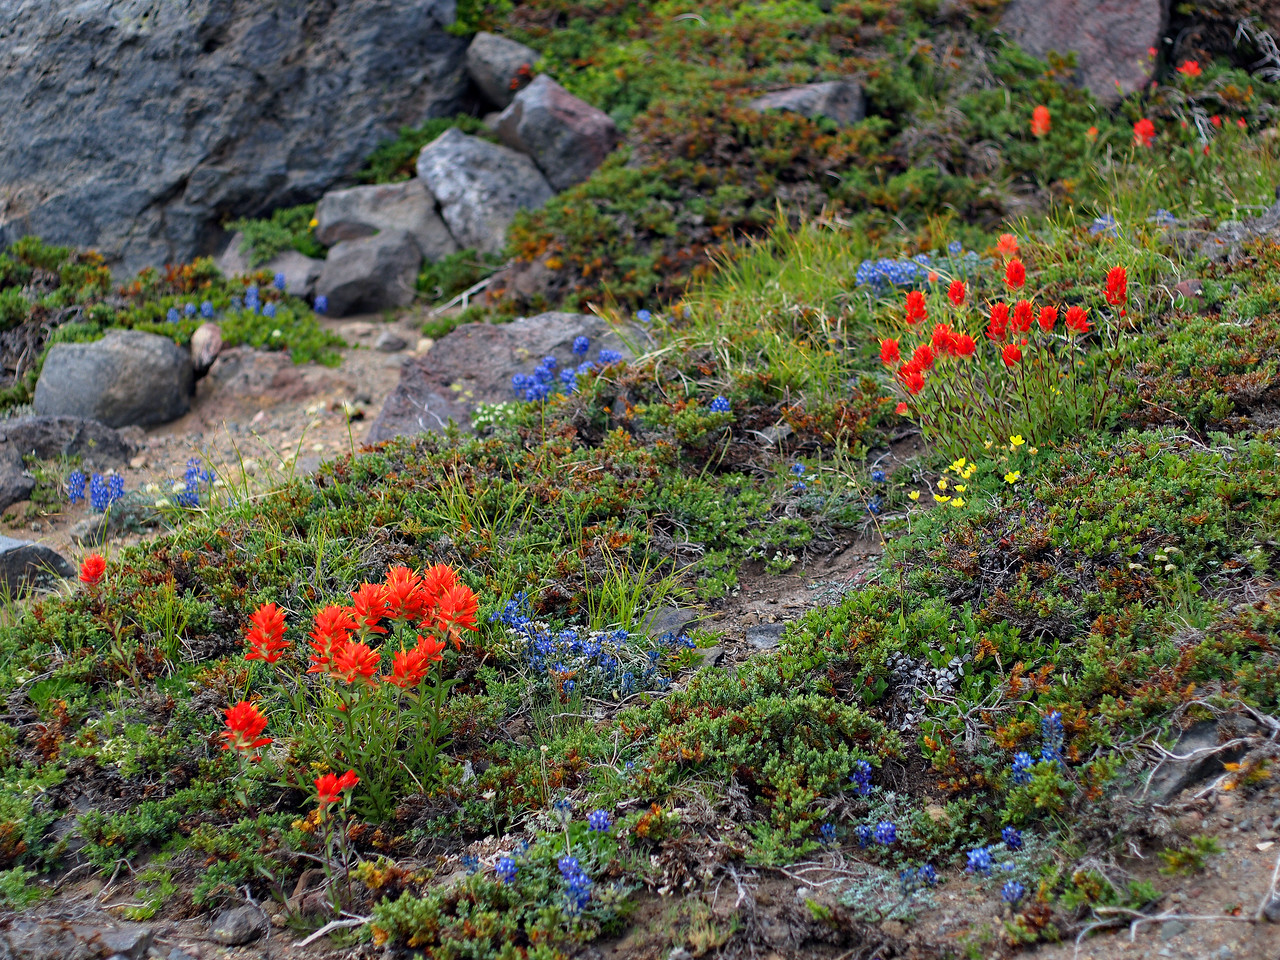 Paintbrush and alpine lupin scattered among the rocks near the summit of Goat Island Mountain.